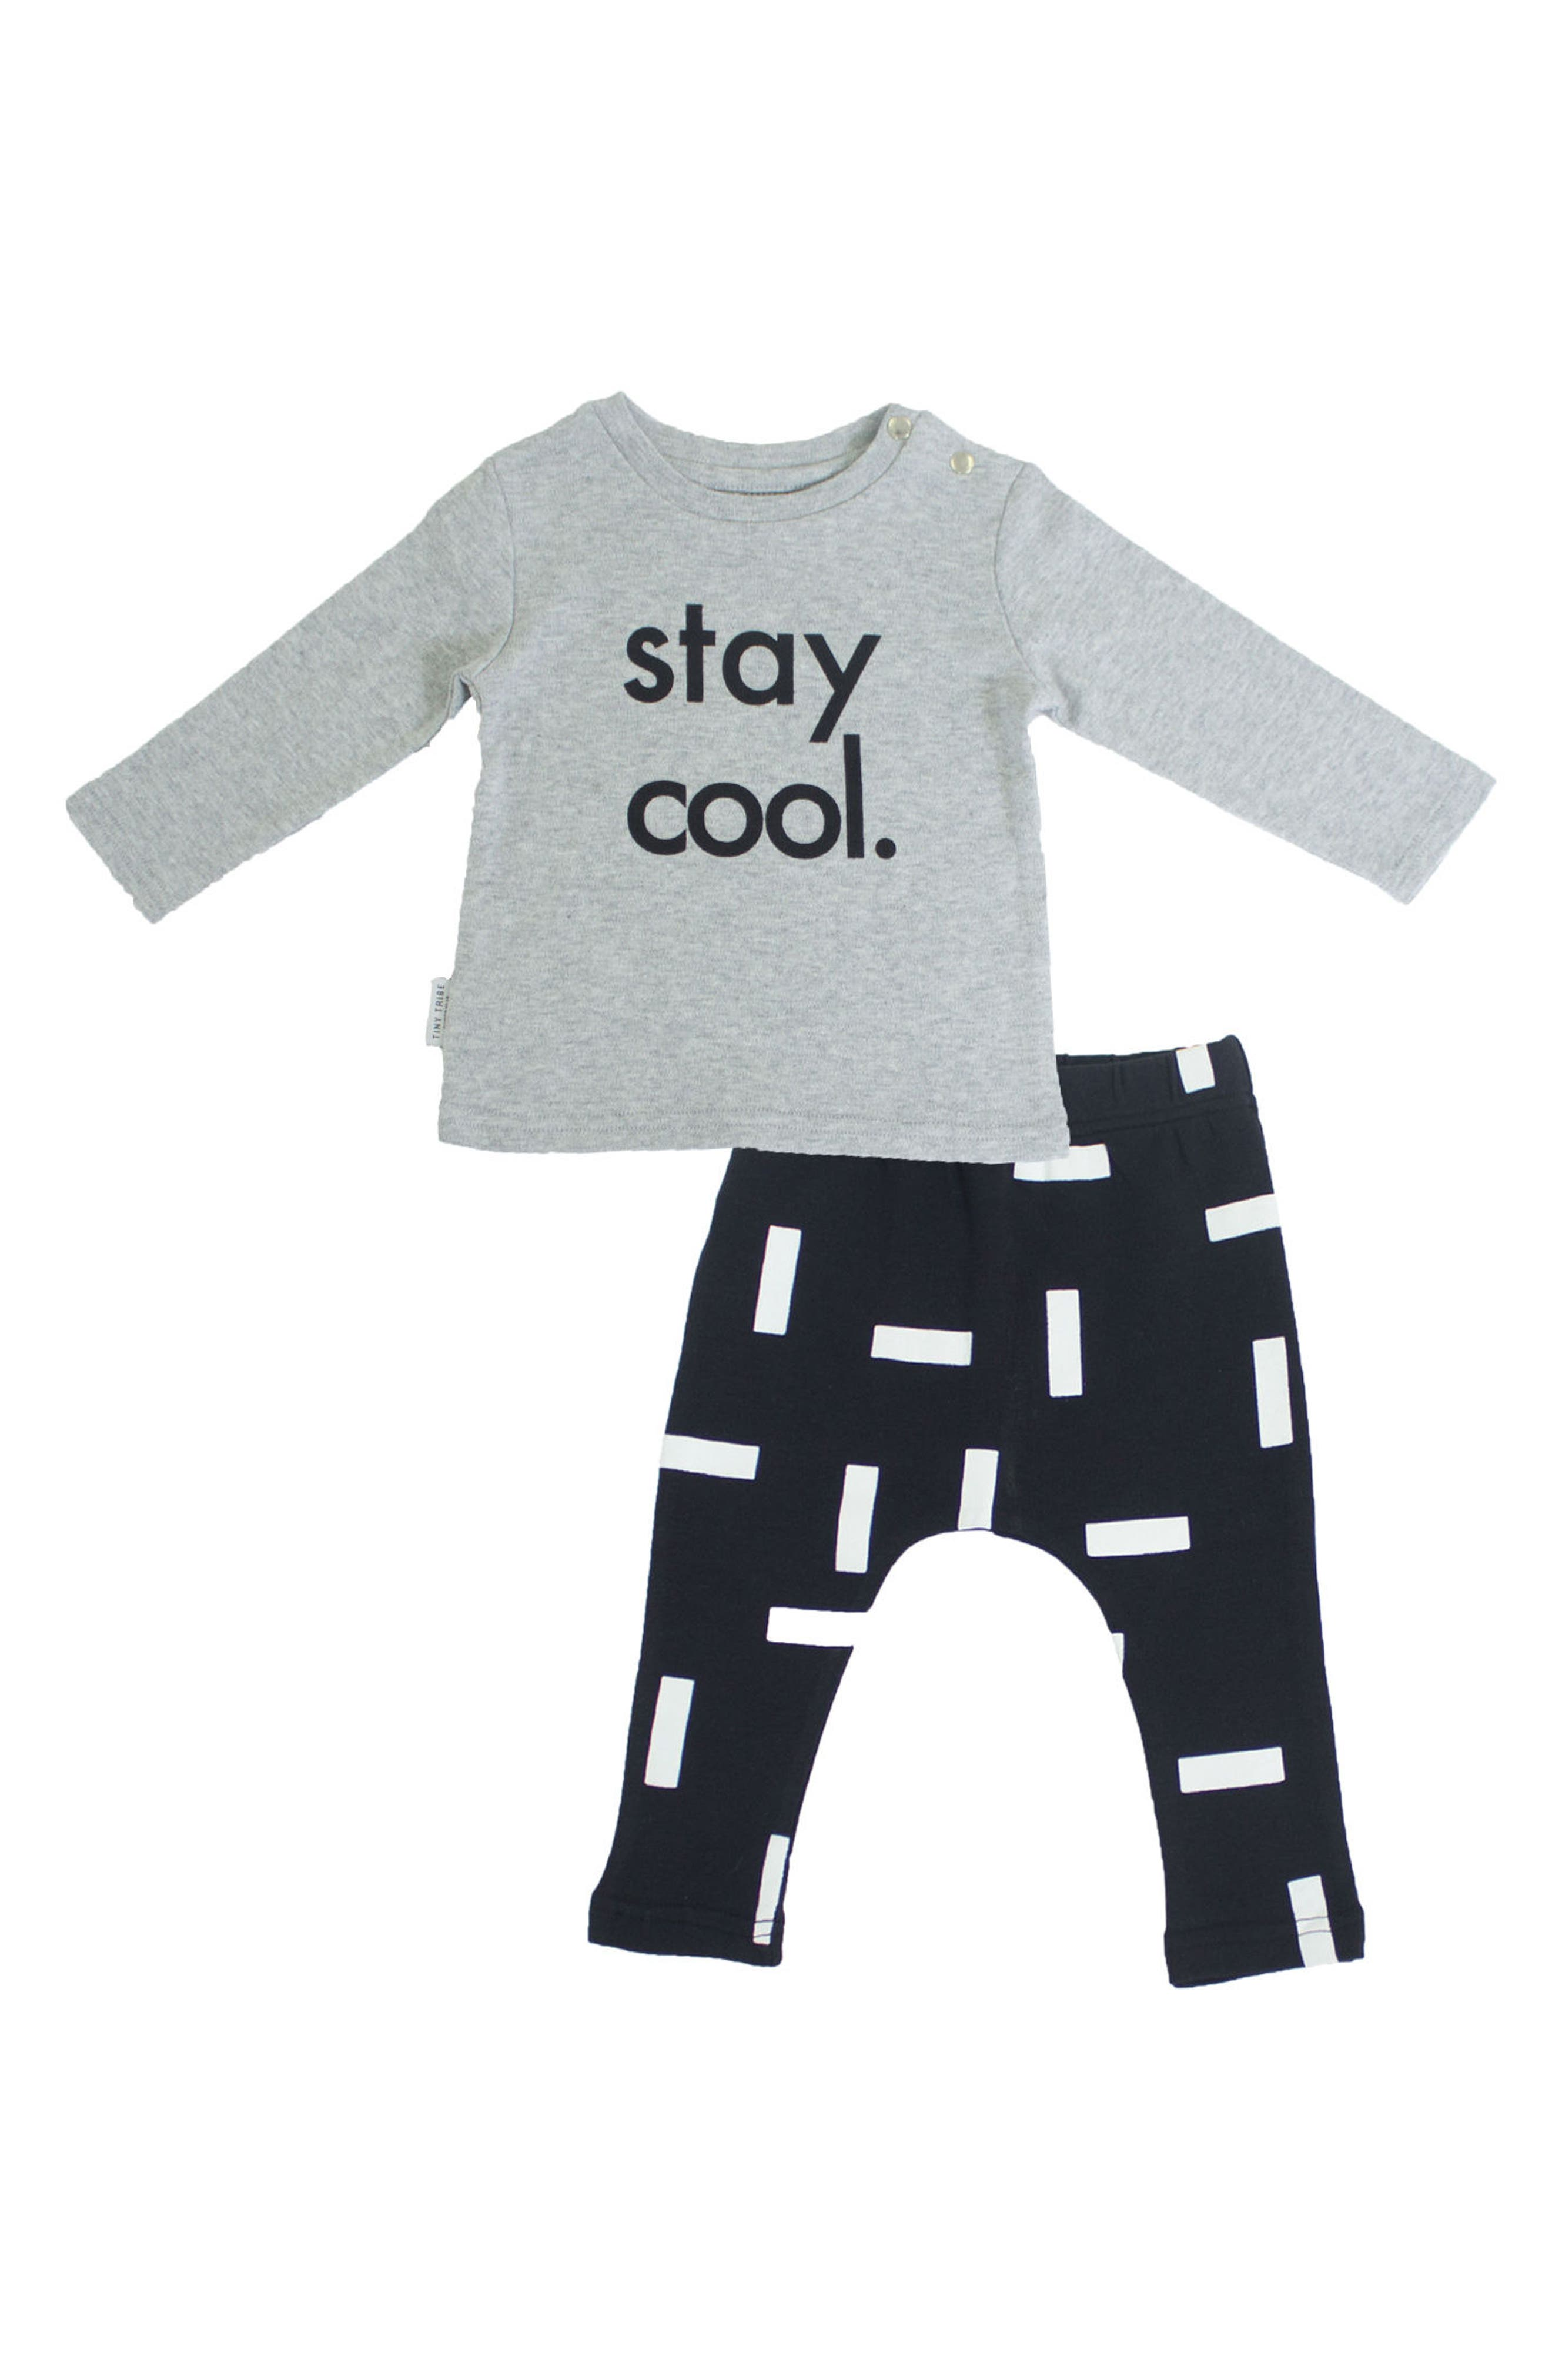 Alternate Image 1 Selected - Tiny Tribe Stay Cool T-Shirt & Leggings Set (Baby & Toddler)